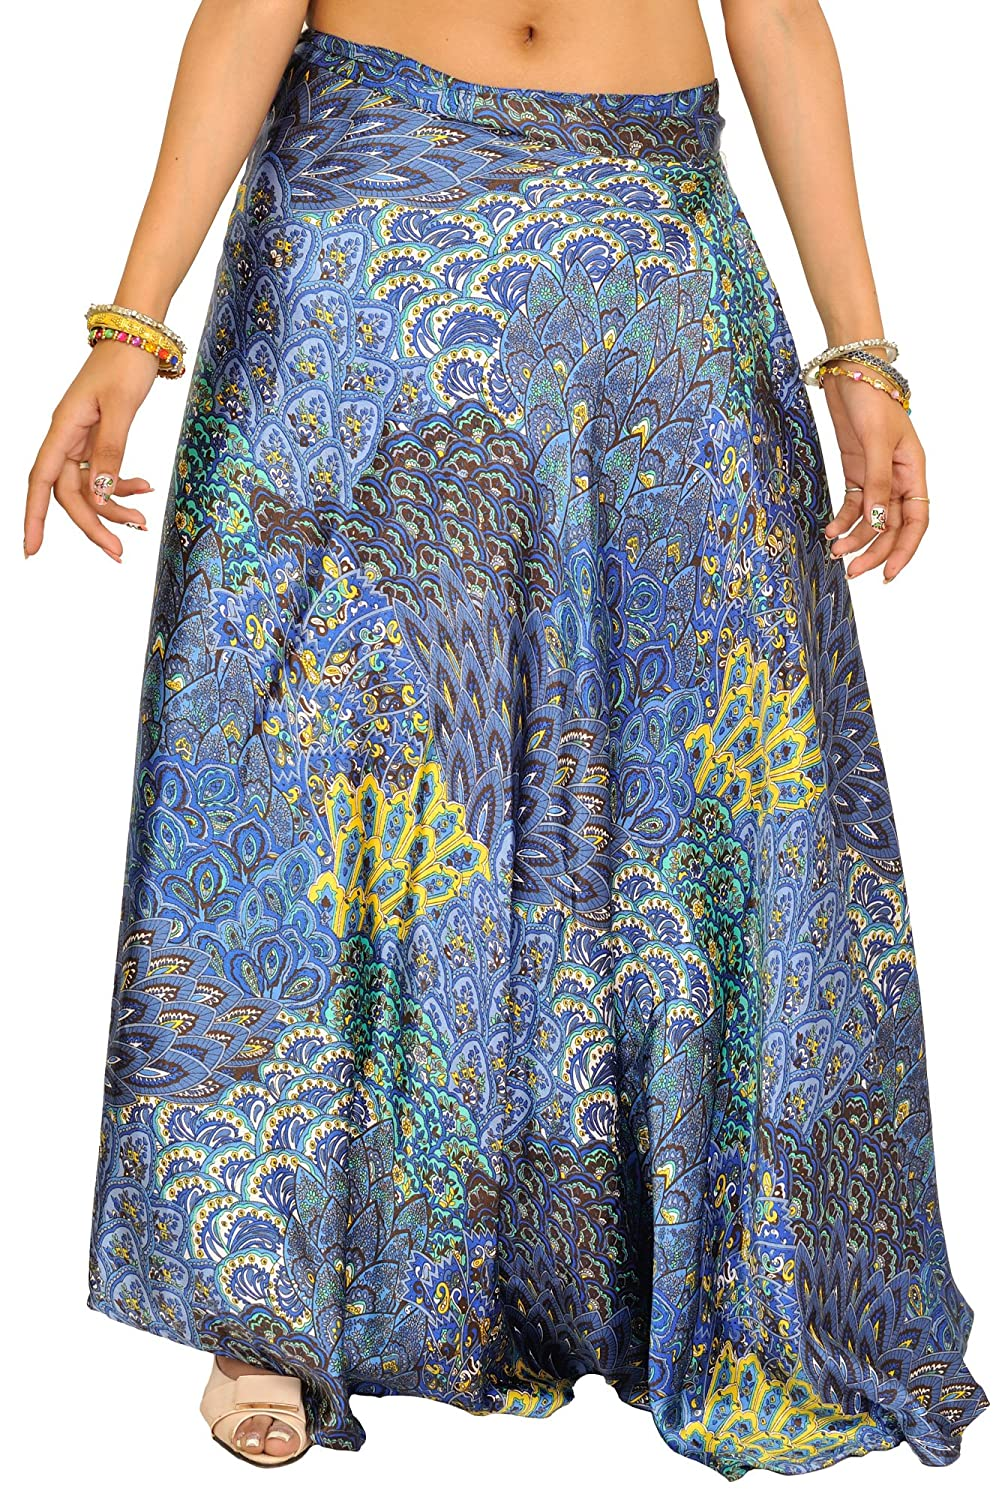 Exotic India Wrap-Around Long Skirt With Printed Flower - Color ...